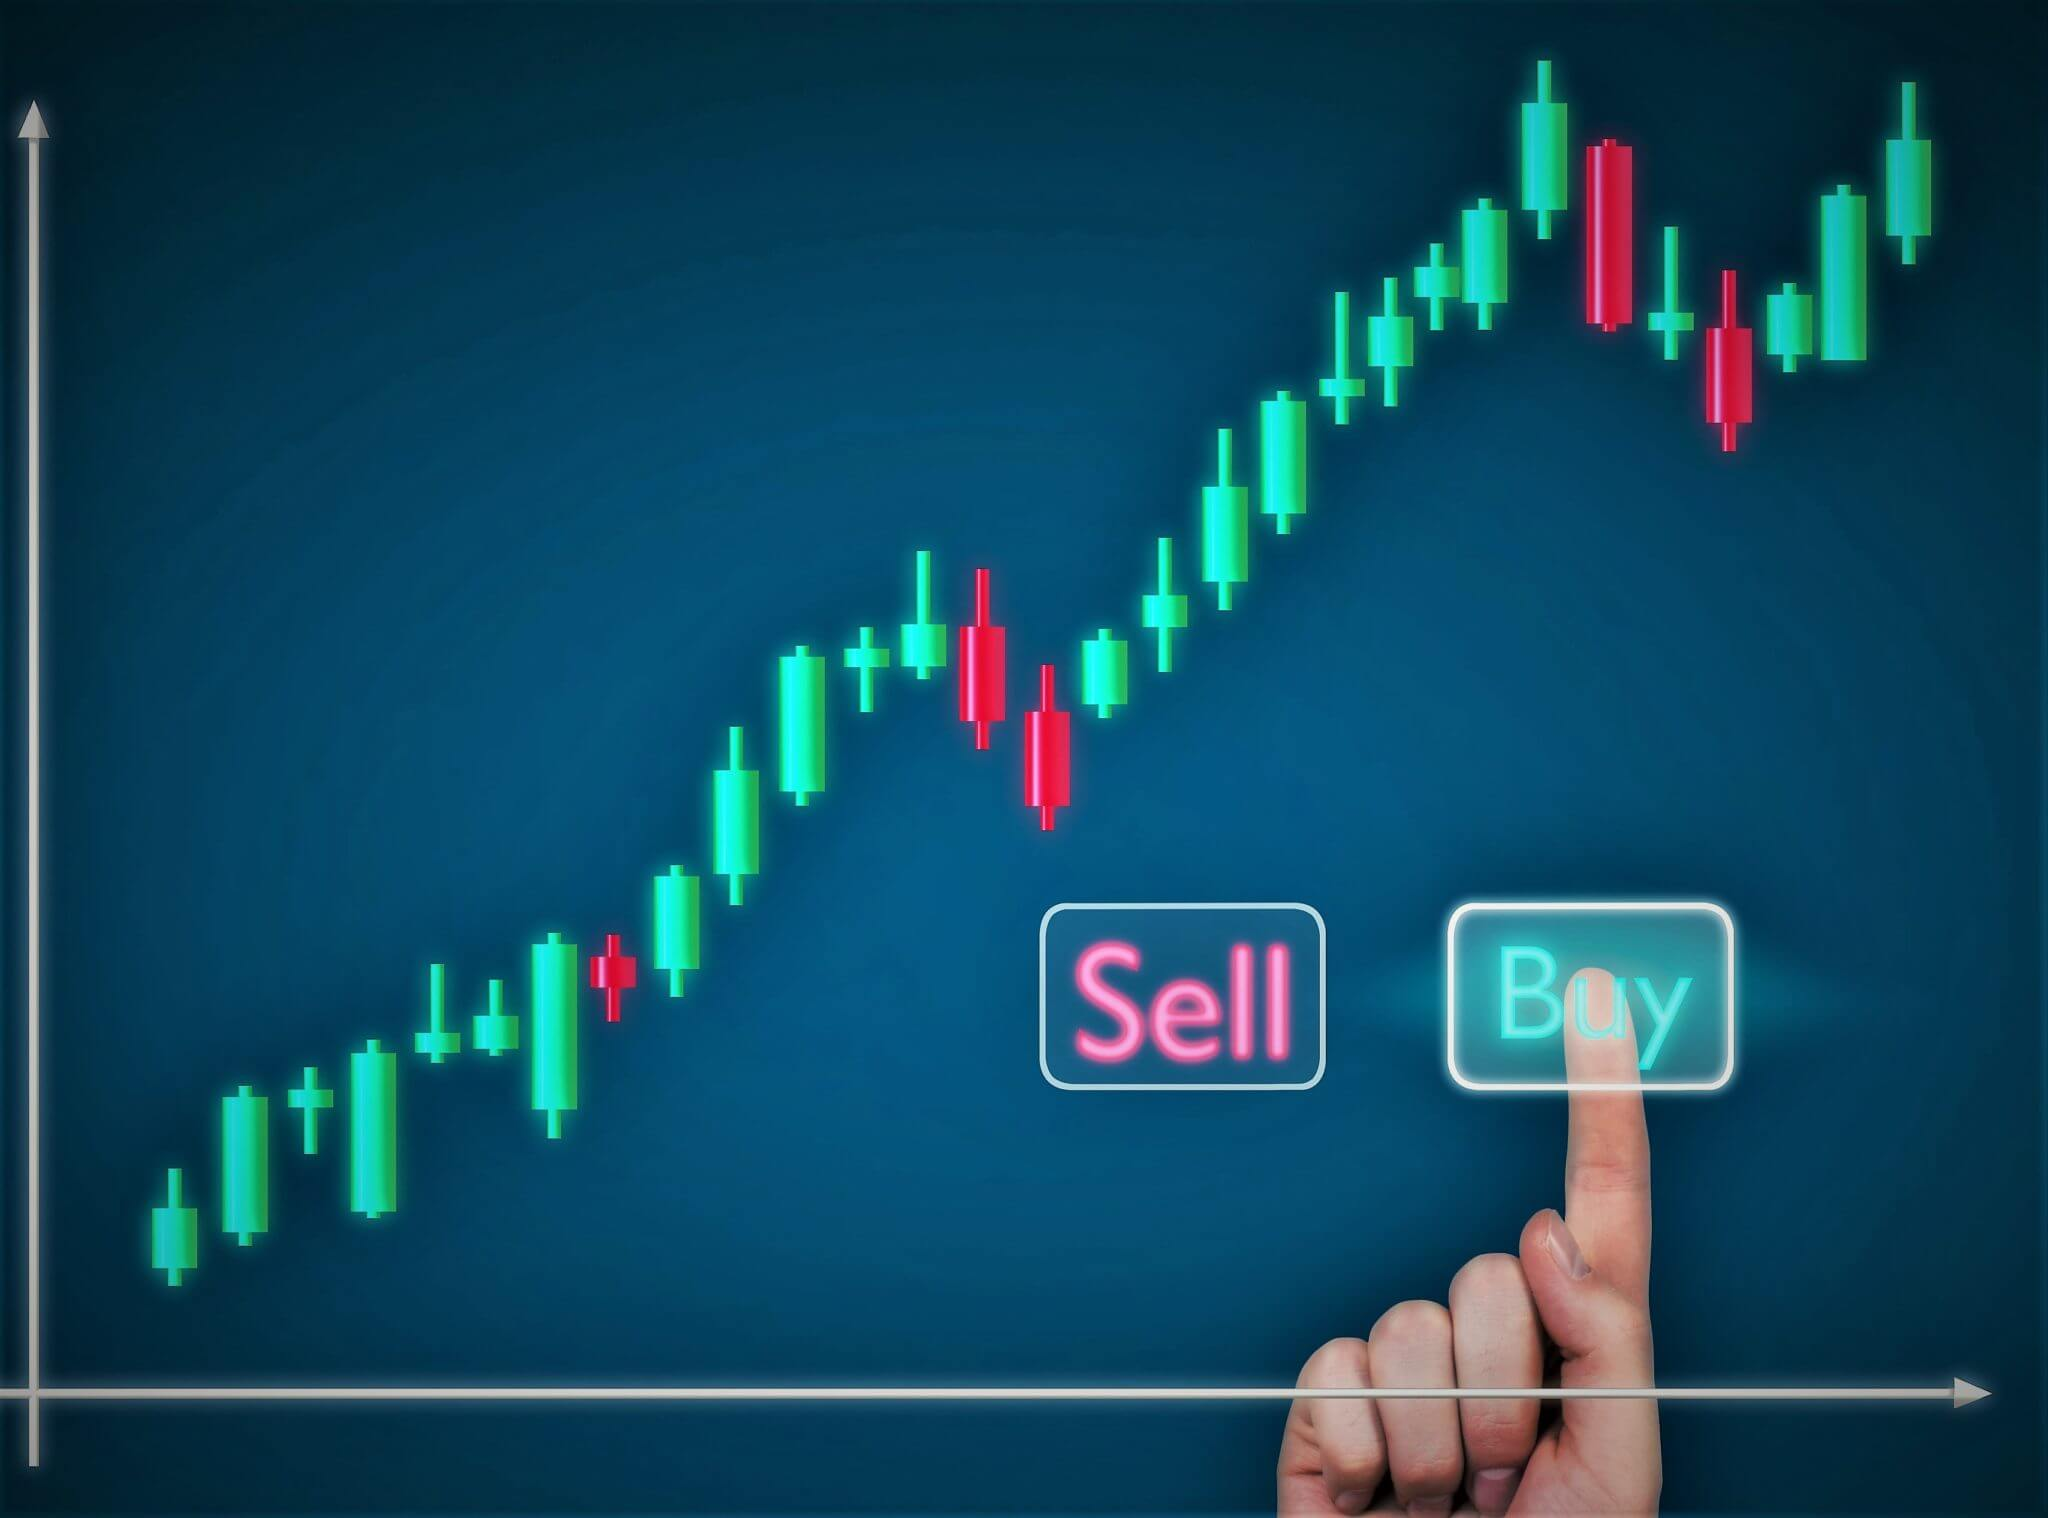 Learn Forex, Share, Commodity trading